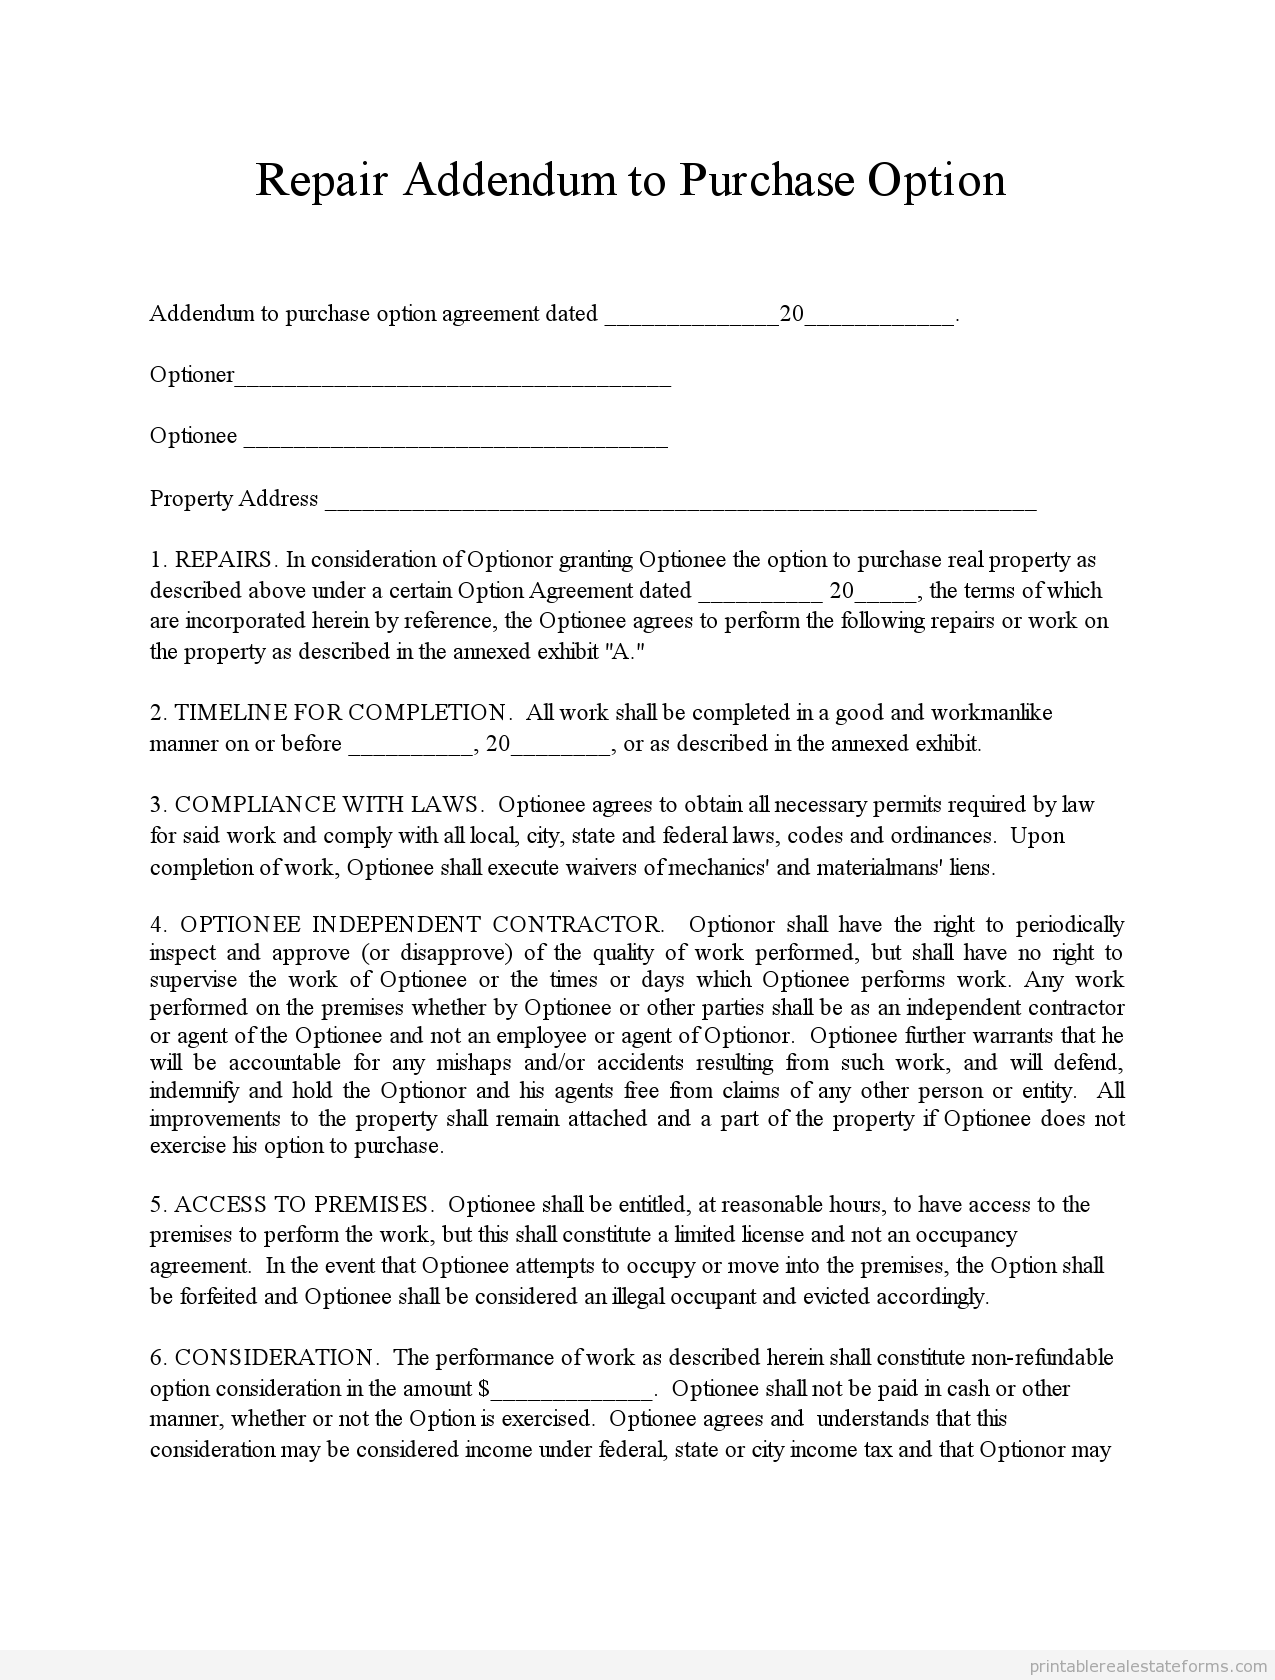 sample printable repair addendum form